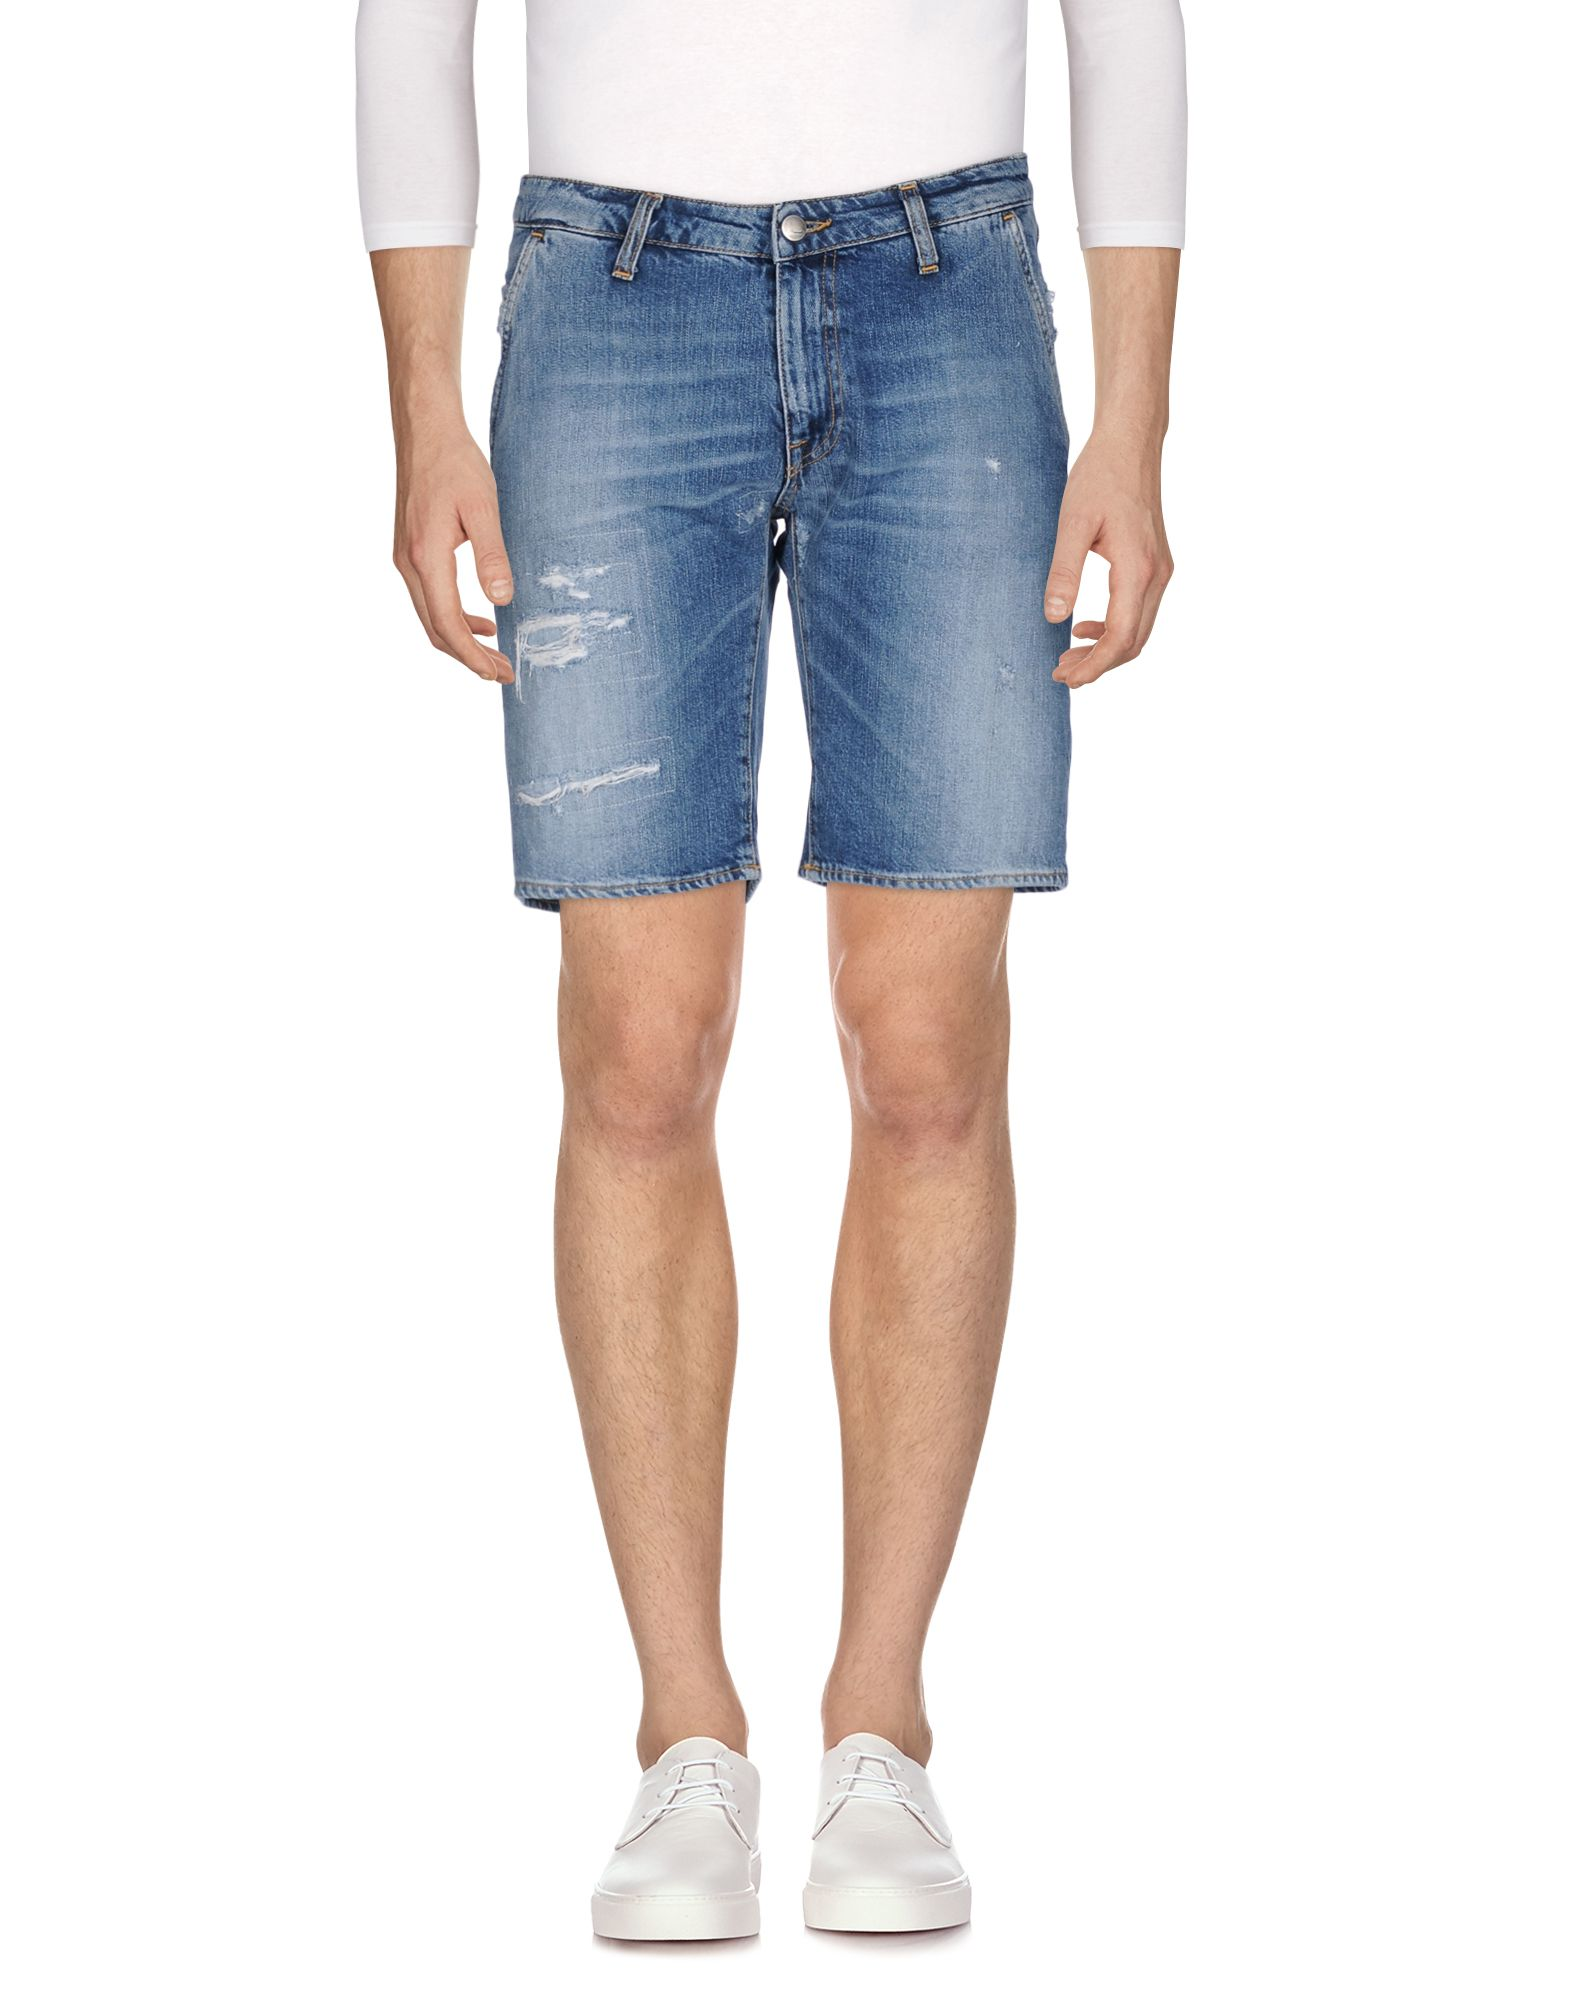 Shorts Jeans (+) People Uomo - Acquista online su